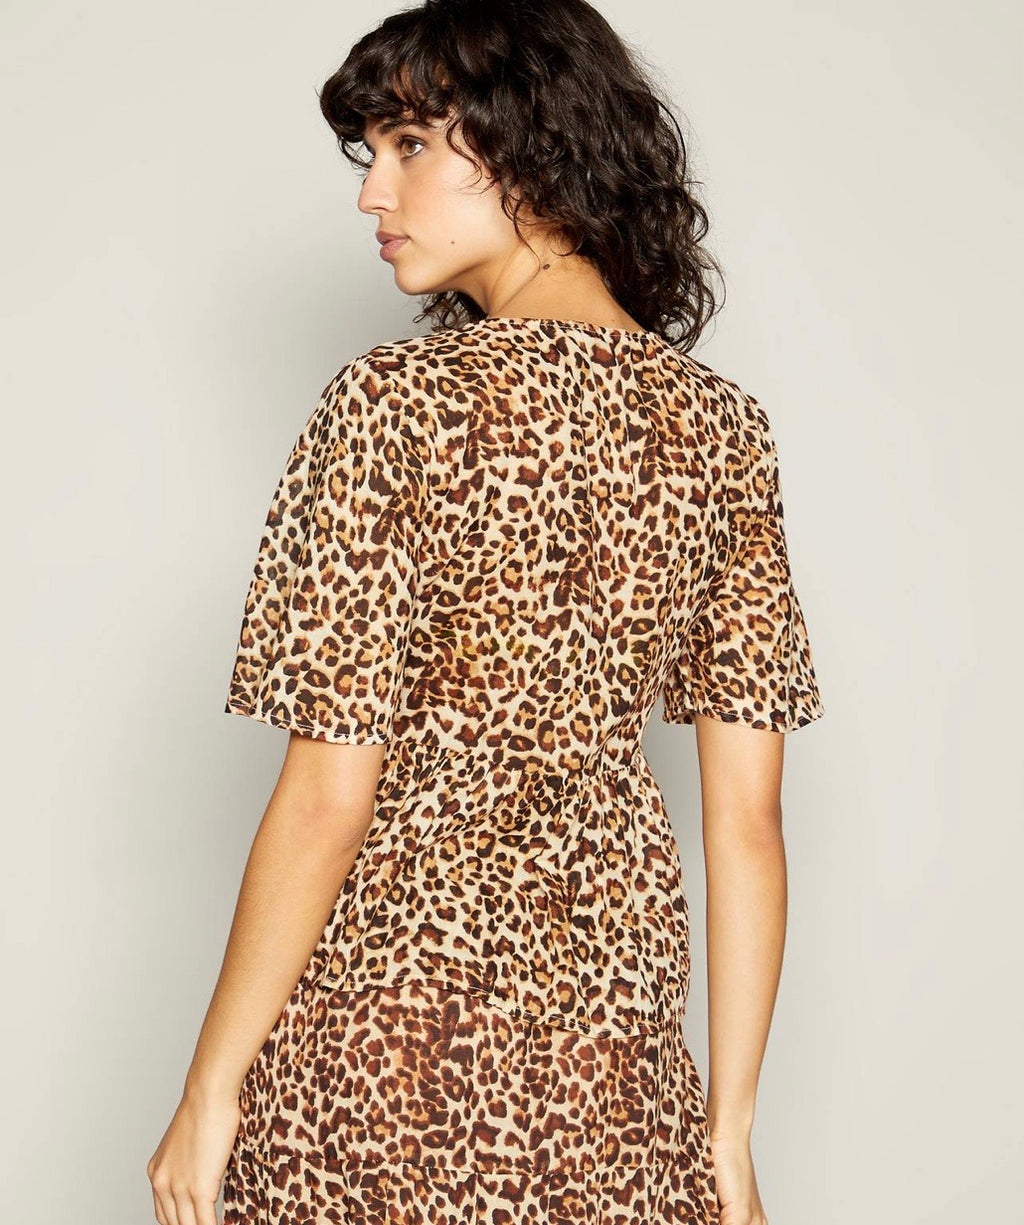 Notina 2/4 leopard print top